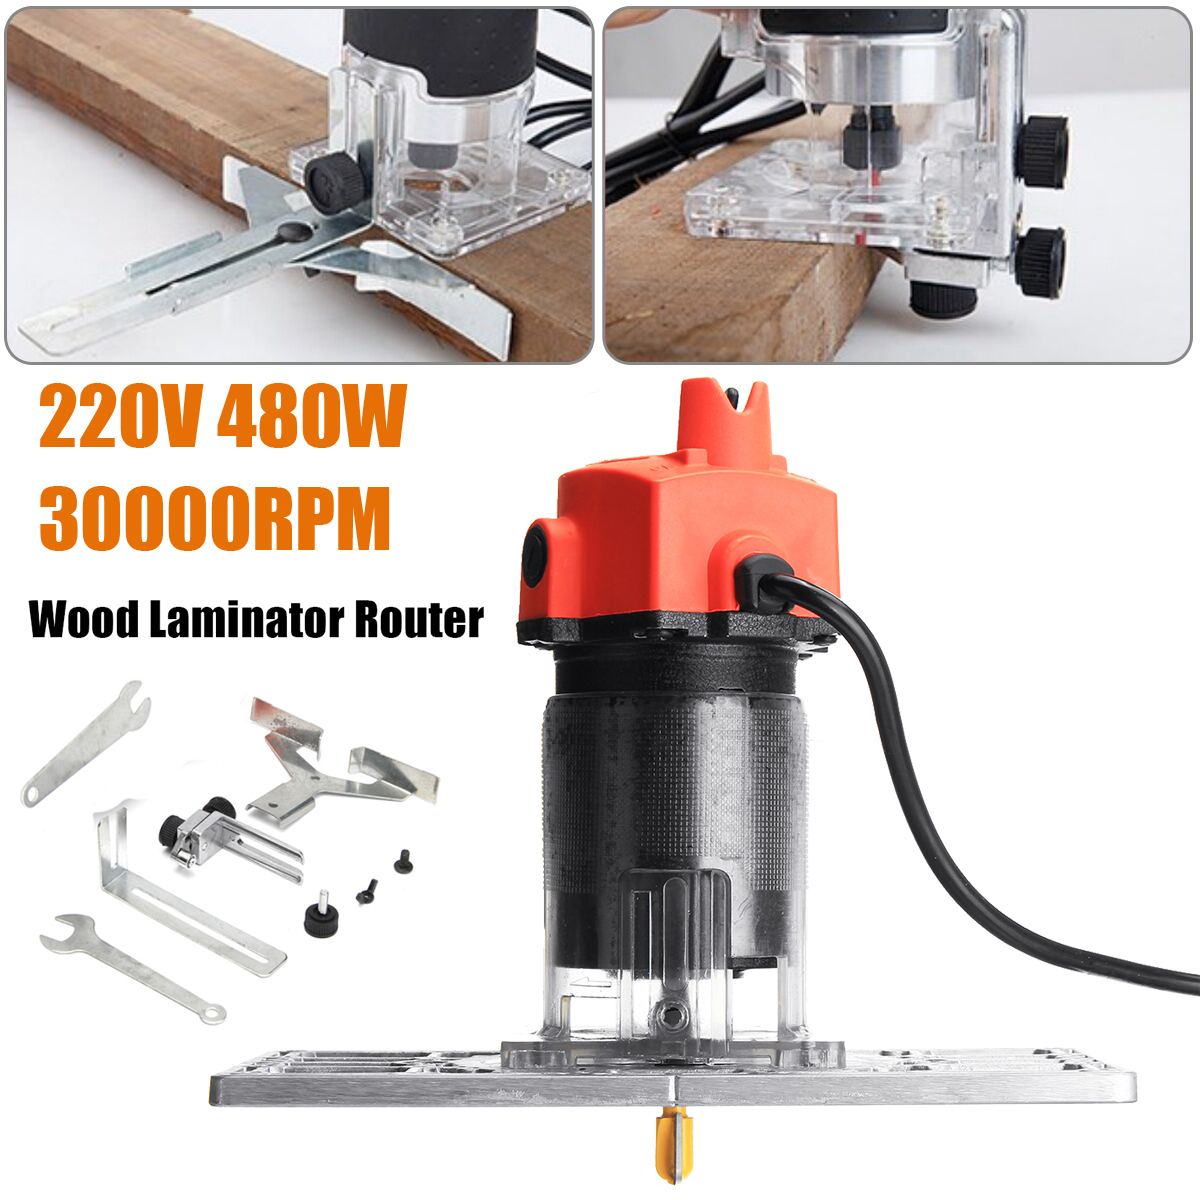 220V 480W Electric Hand Trimmer Router Edge Wood Clean Cuts Power Woodworking Tool Set